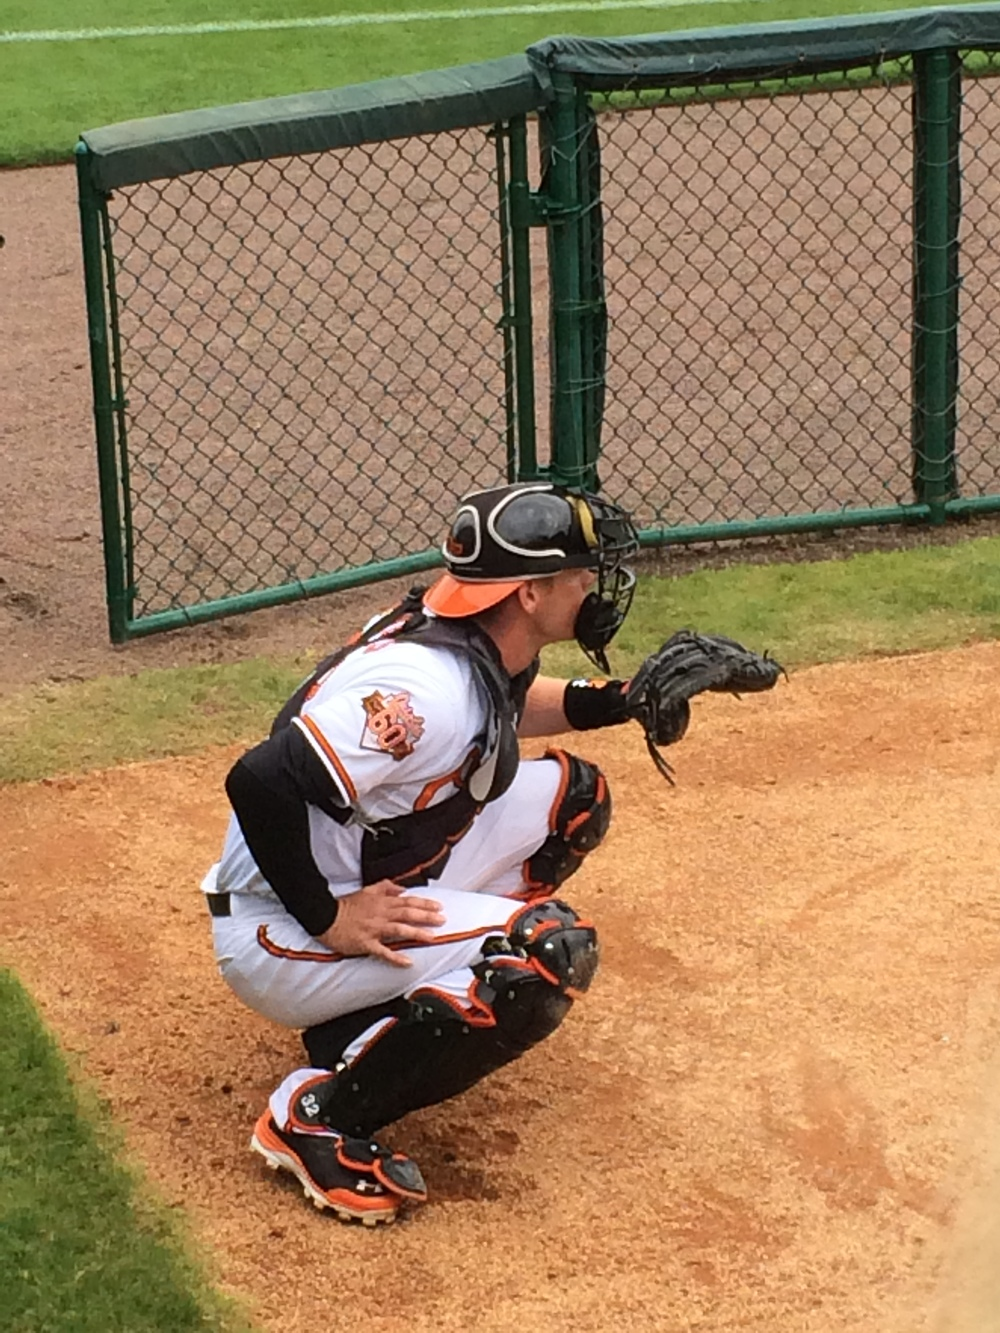 Matt Wieters in the bullpen prior to the Orioles taking on the Phillies at Ed Smith Stadium (photo credit: Paul Cooke)